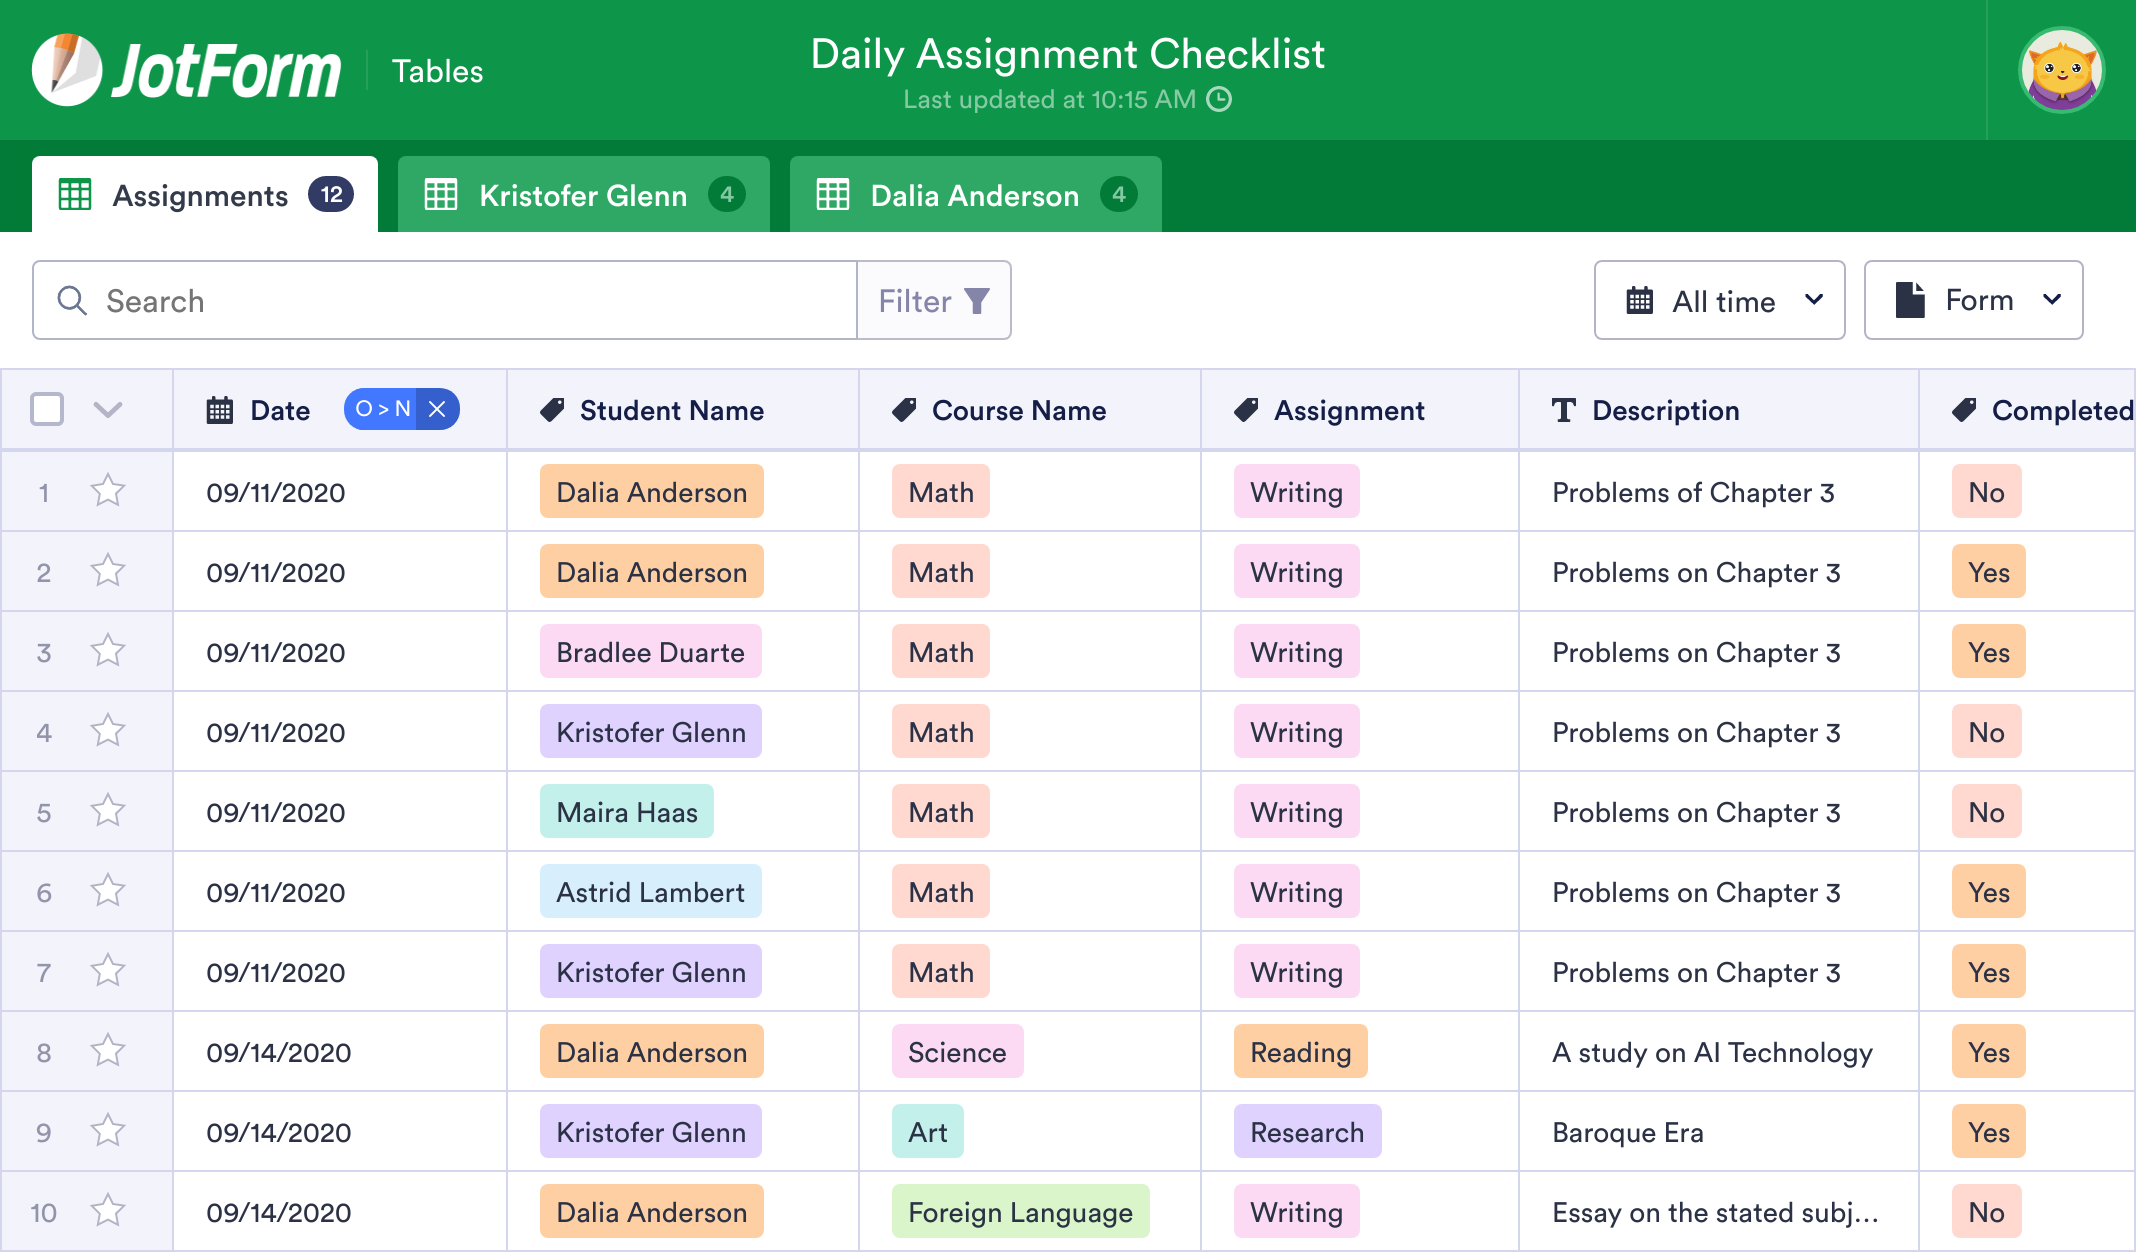 Daily Assignment Checklist